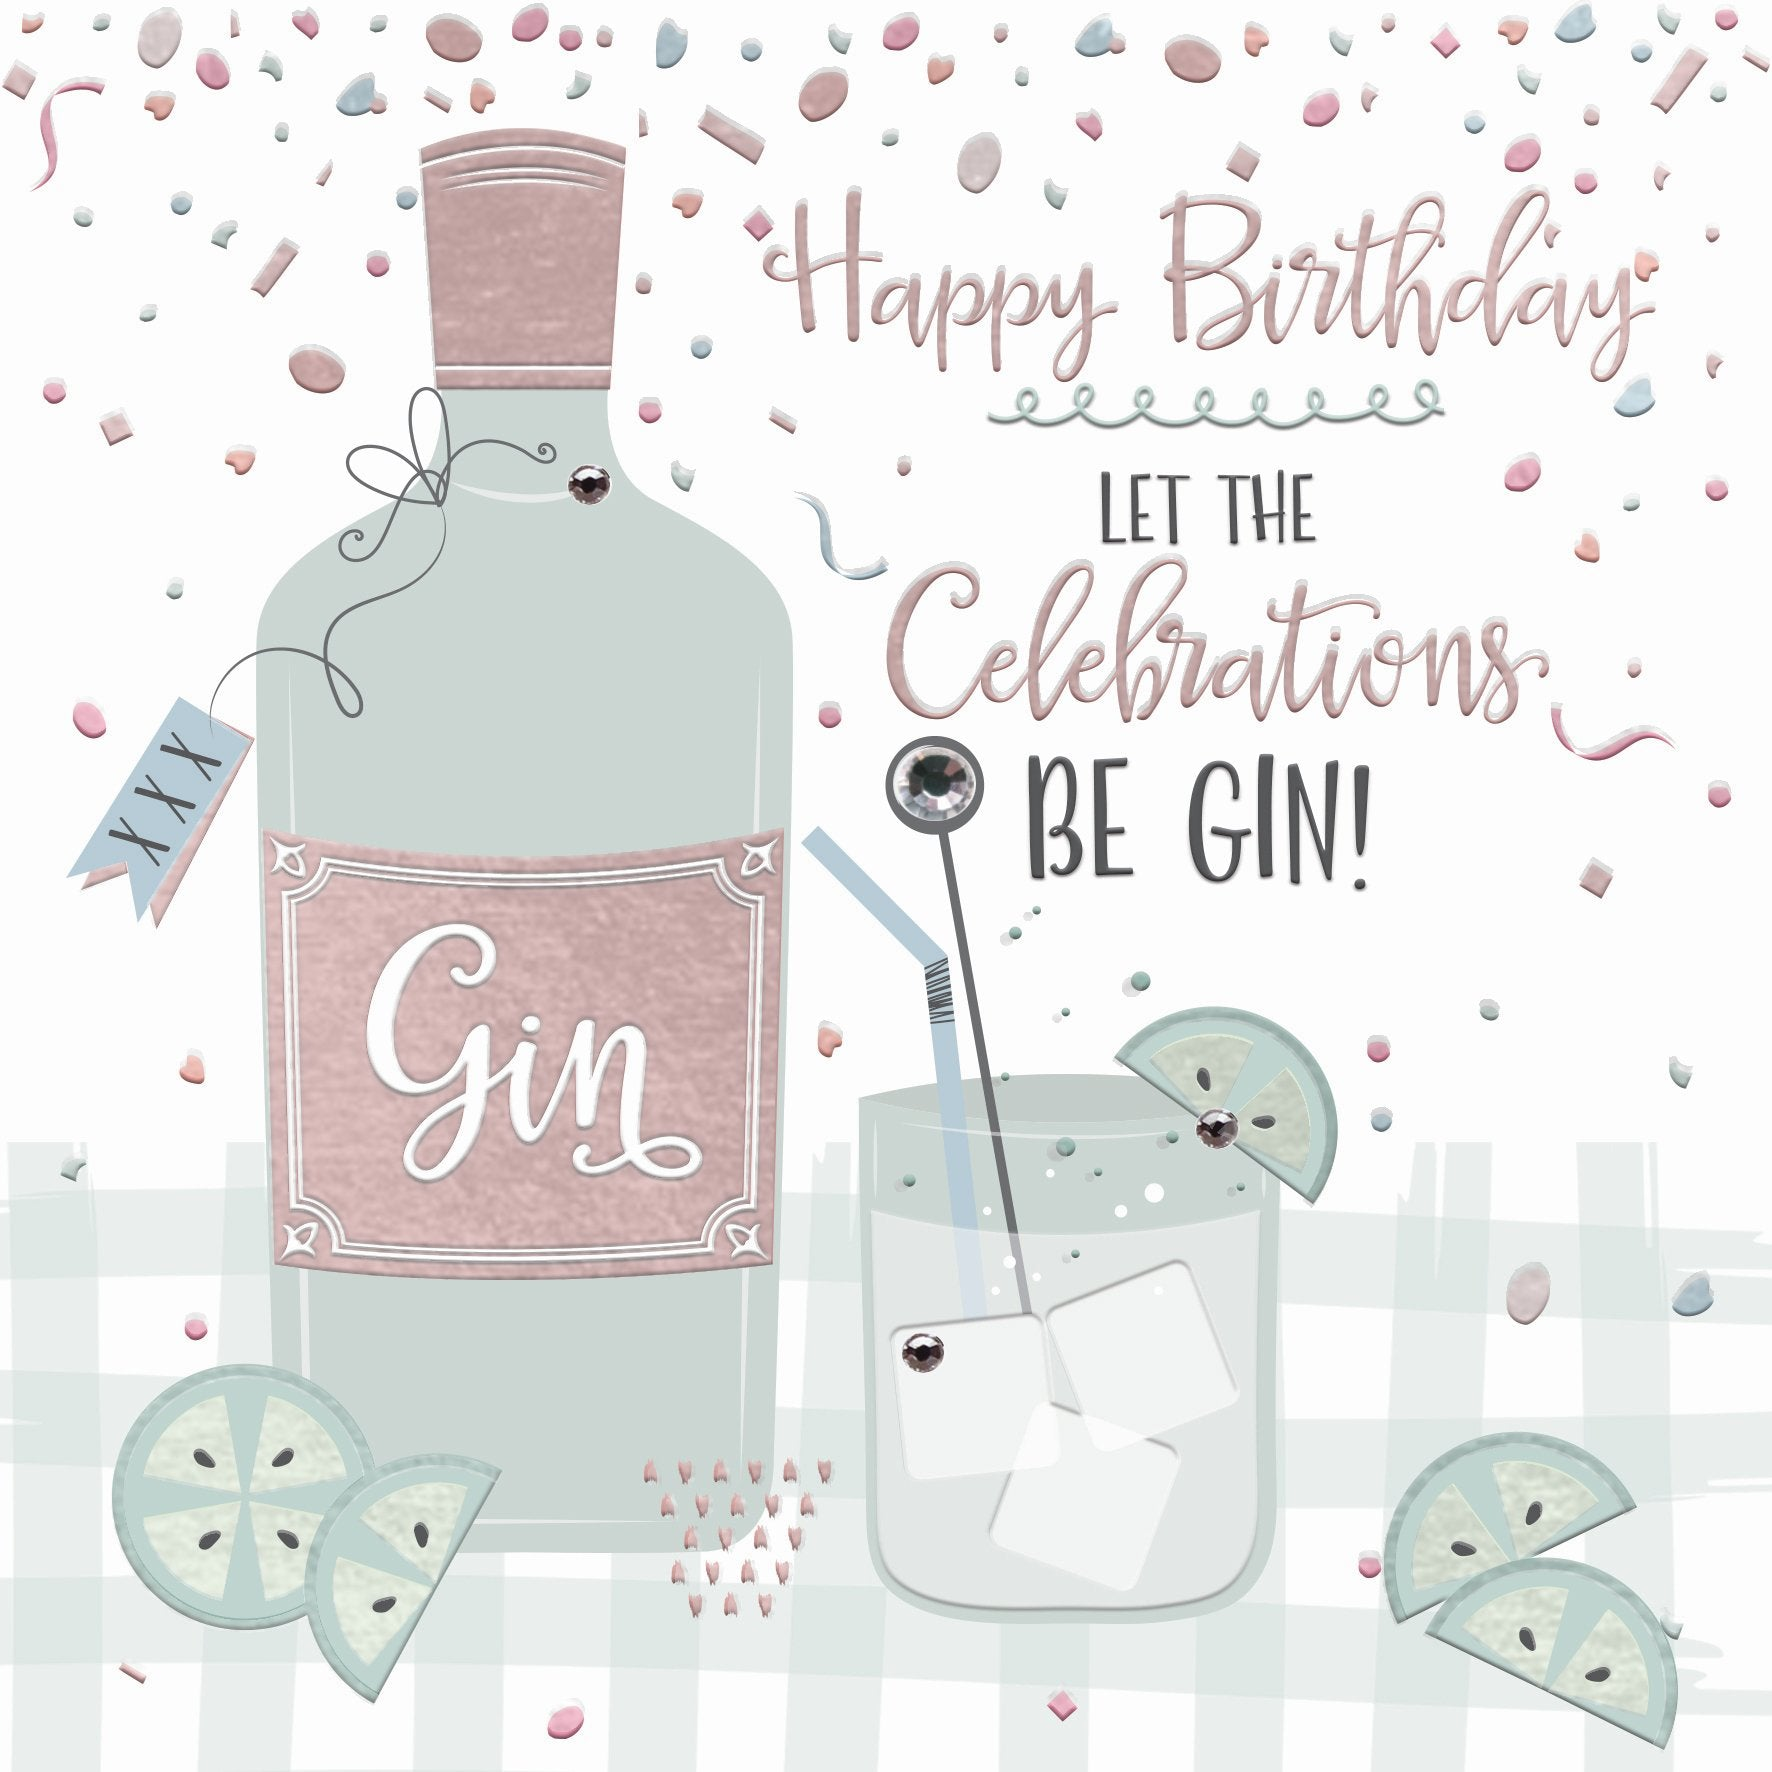 Let the celebrations be Gin Birthday Card